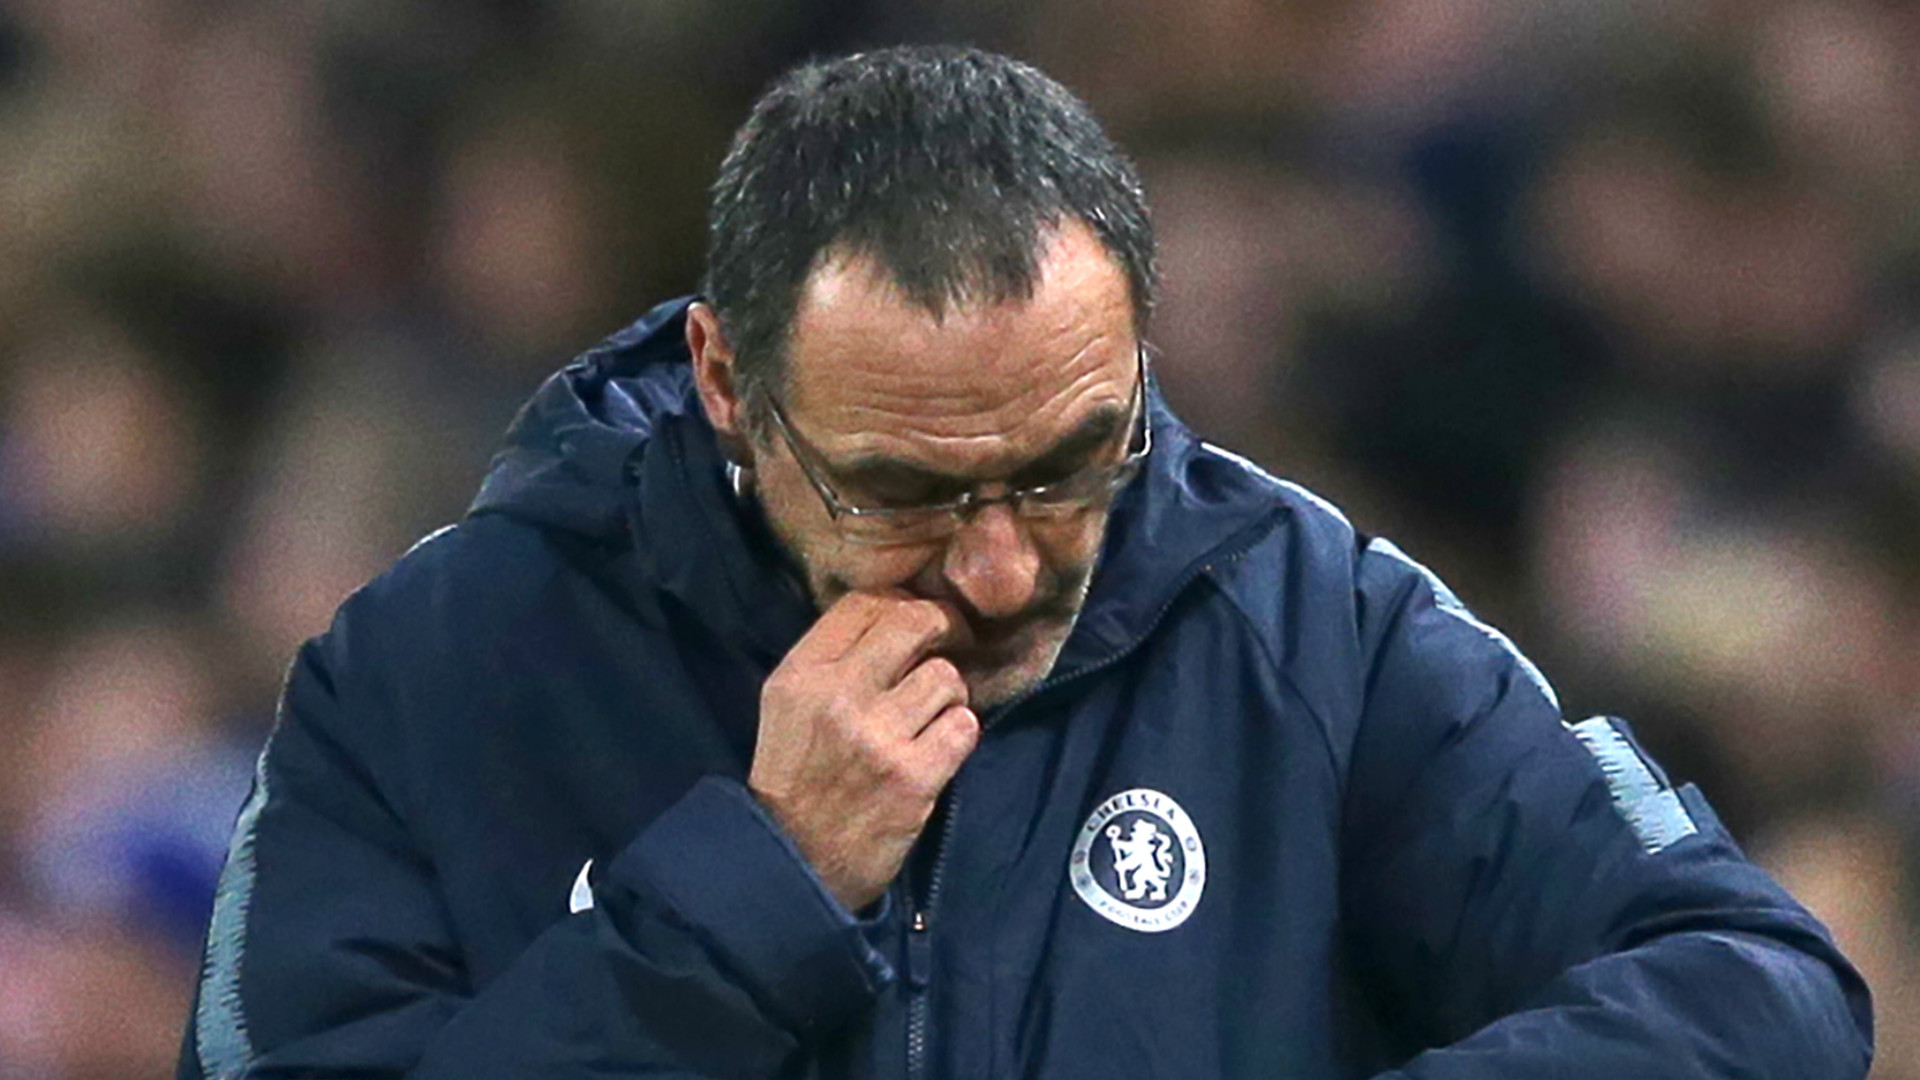 Chelsea SHOCKER! FIFA hit them with two transfer window ban